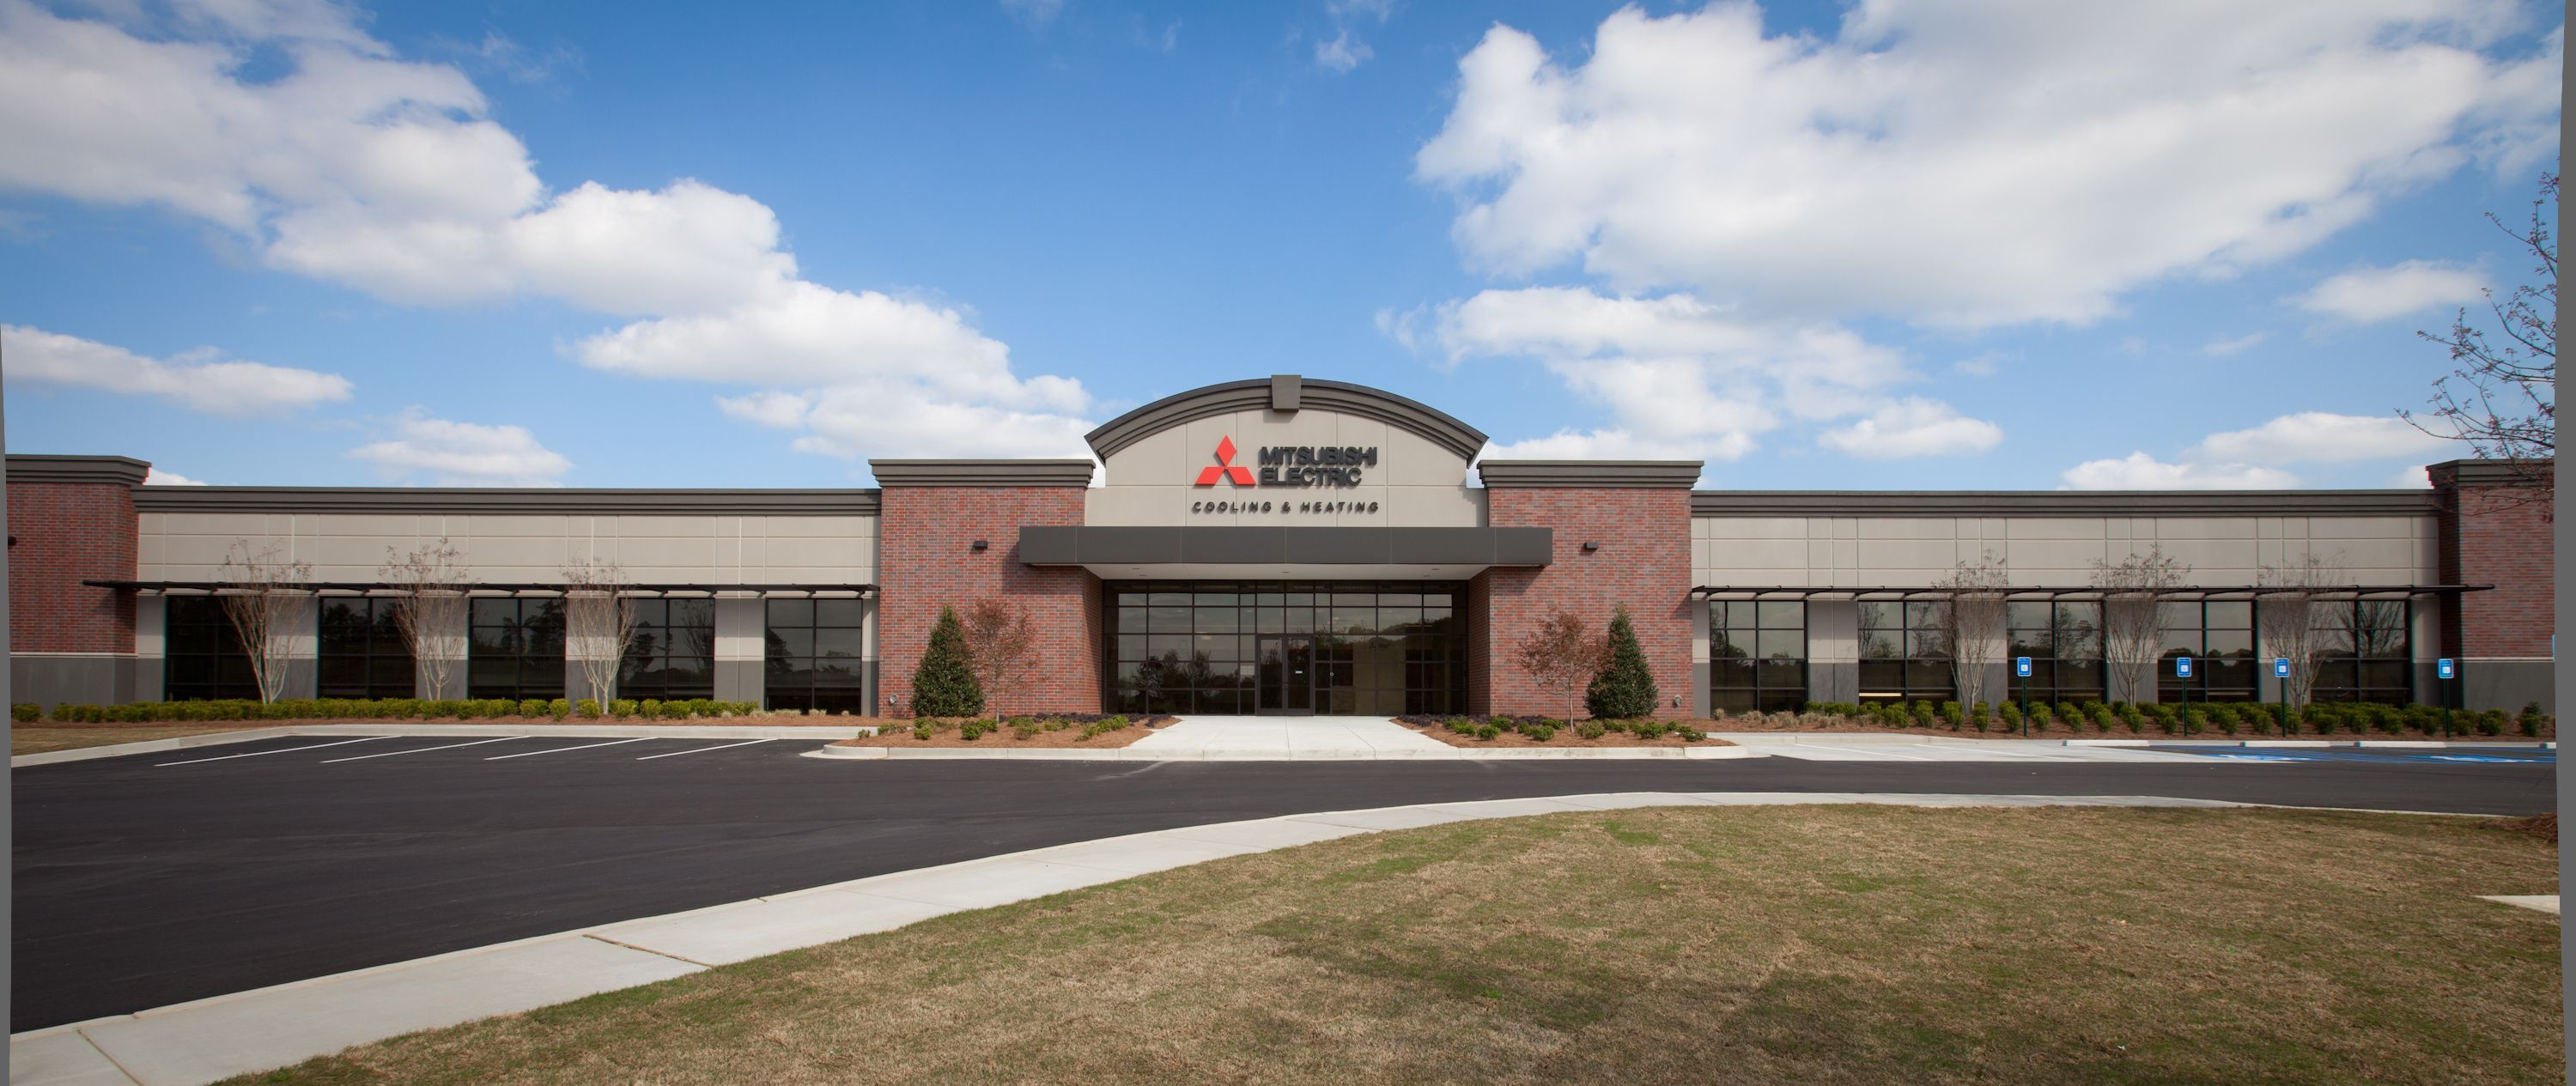 Mitsubishi Electric Celebrates Continued Growth with Facility Expansion Grand Opening Ceremony ...